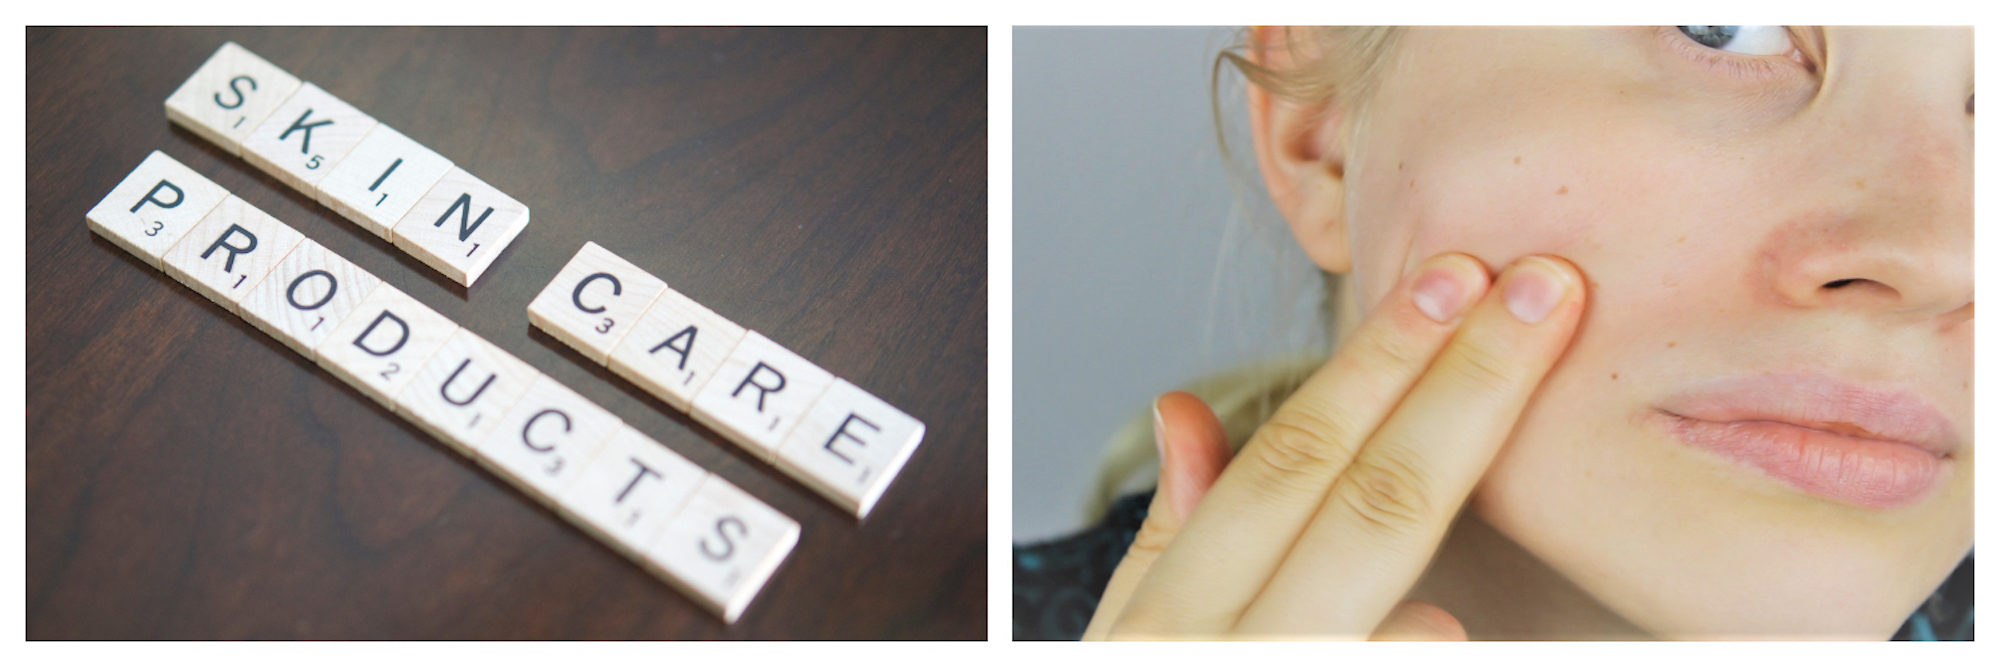 Buy discounted skincare products for less at French pharmacies. Scrabble letters spelling 'Skin care products' (left) and a young woman examining her skin (right).